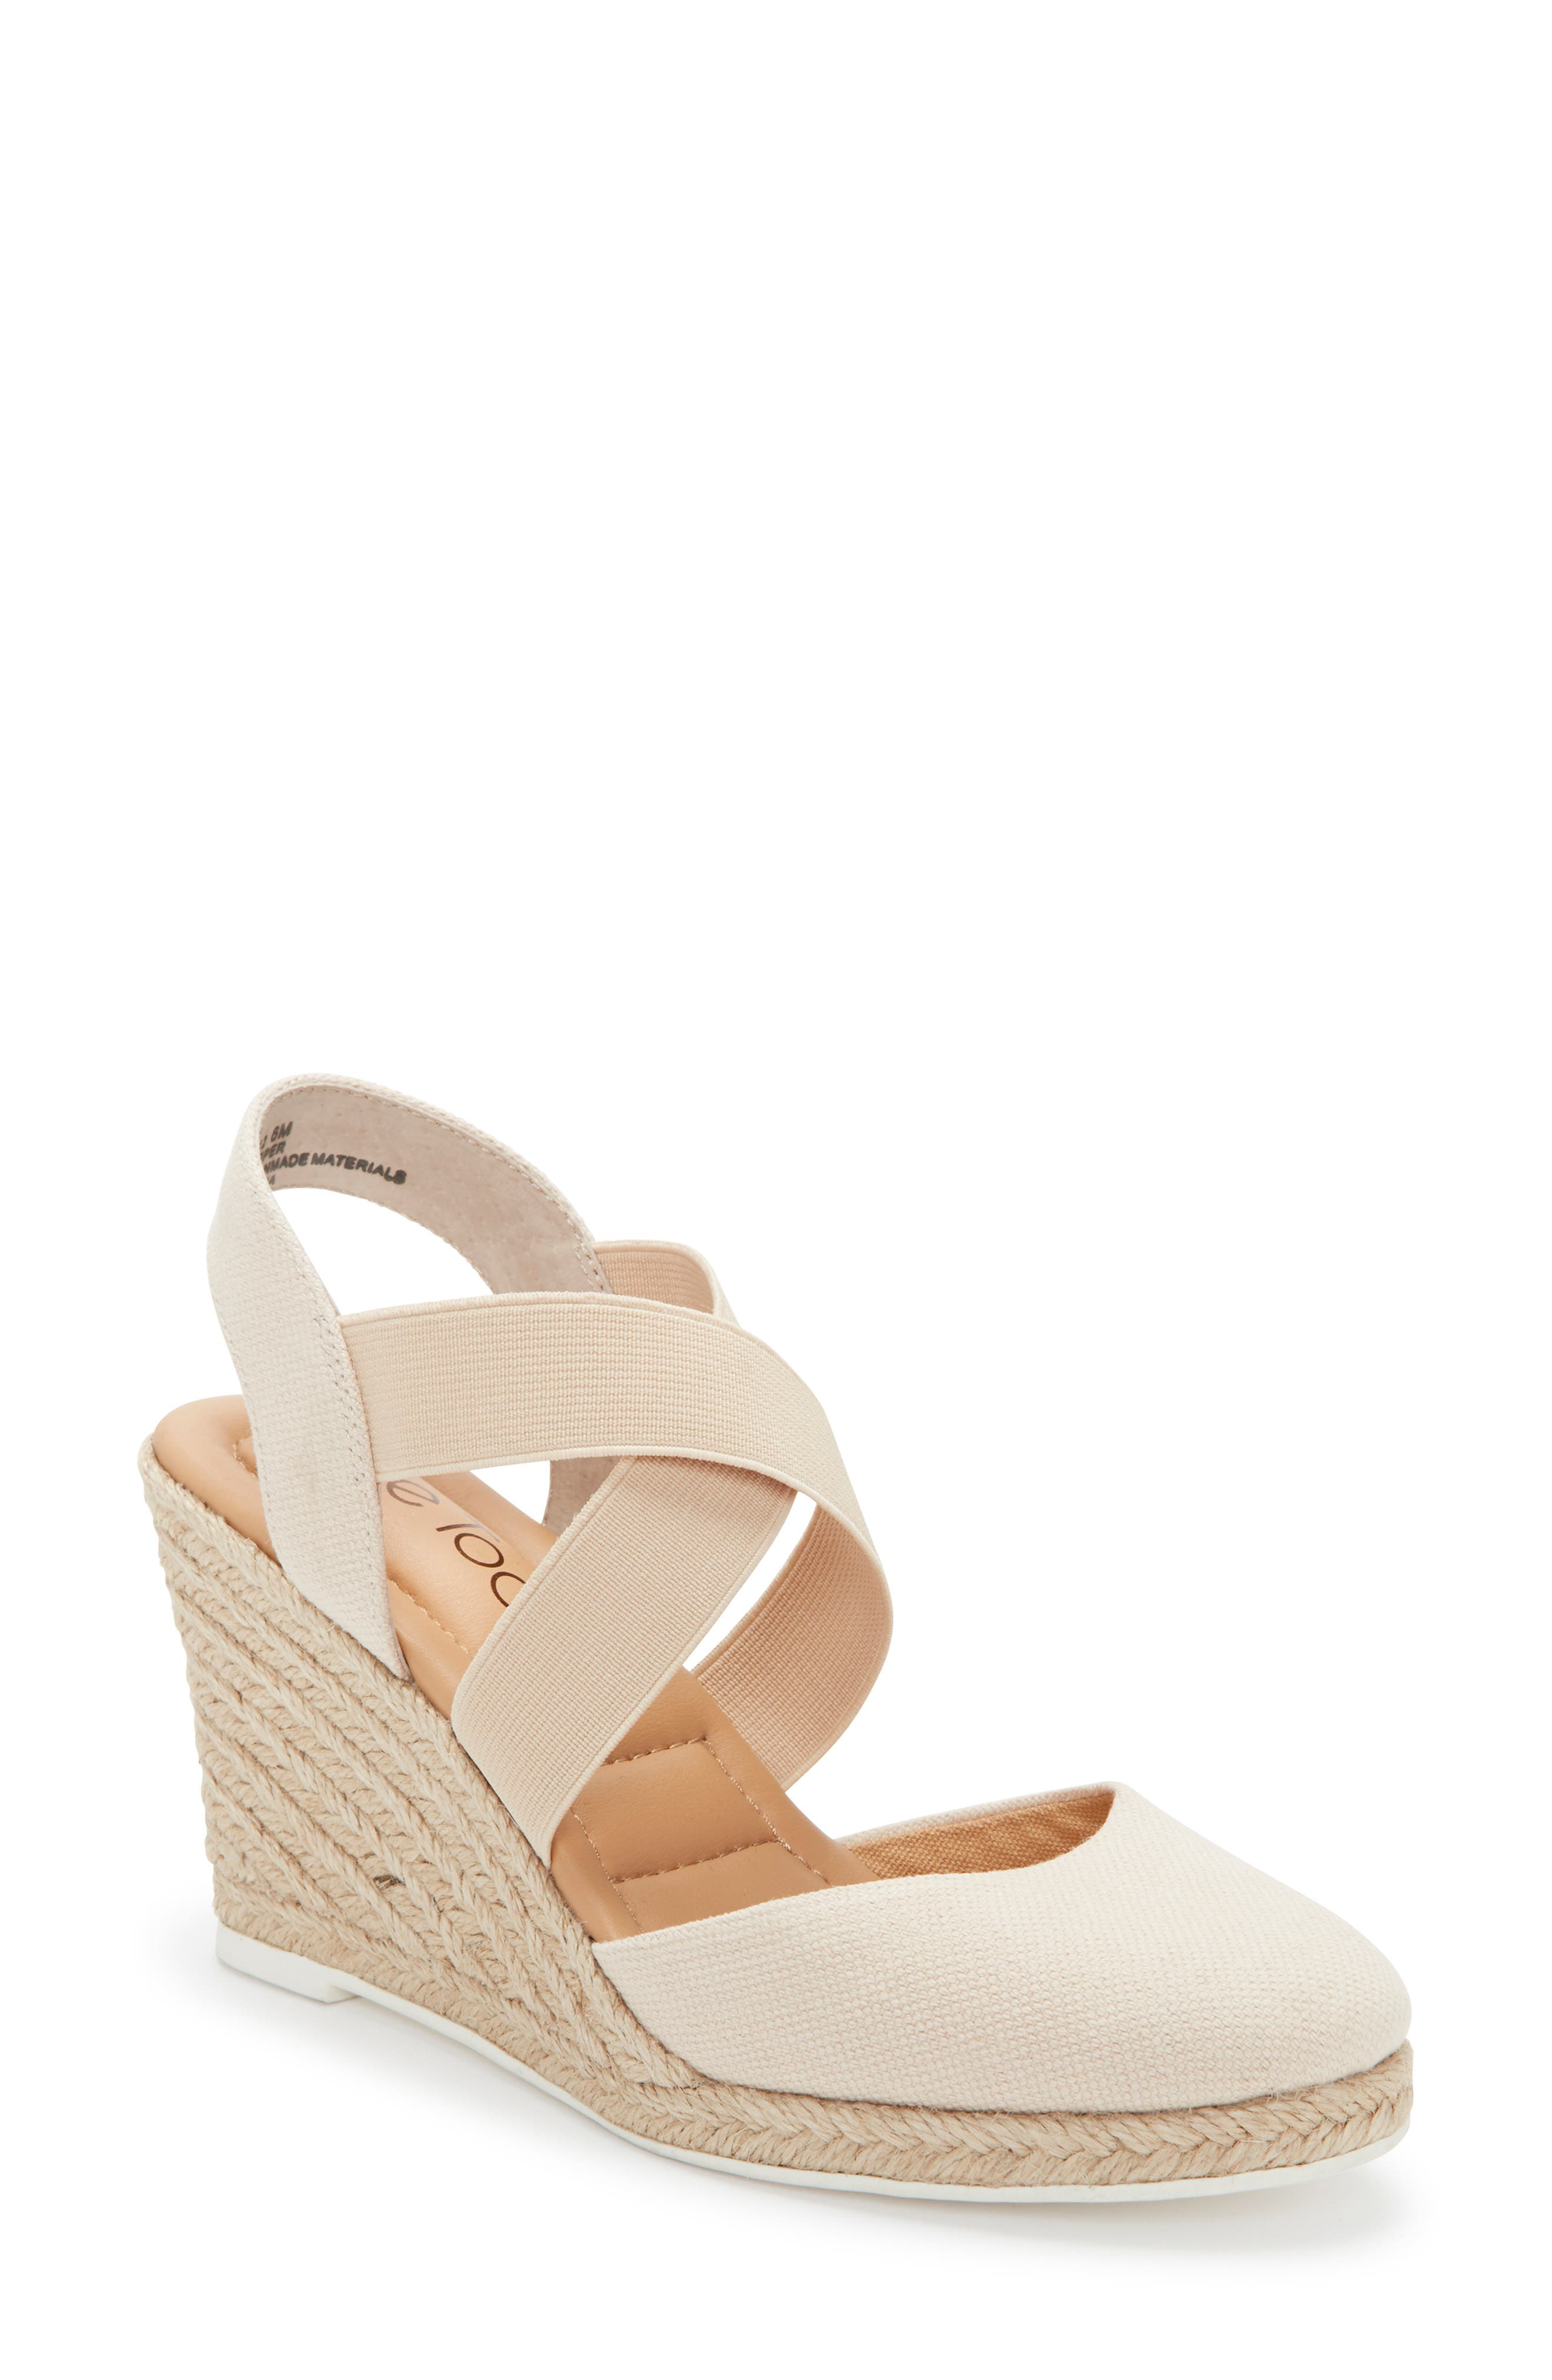 ME TOO, Brinley Espadrille Wedge, Main thumbnail 1, color, NATURAL CANVAS